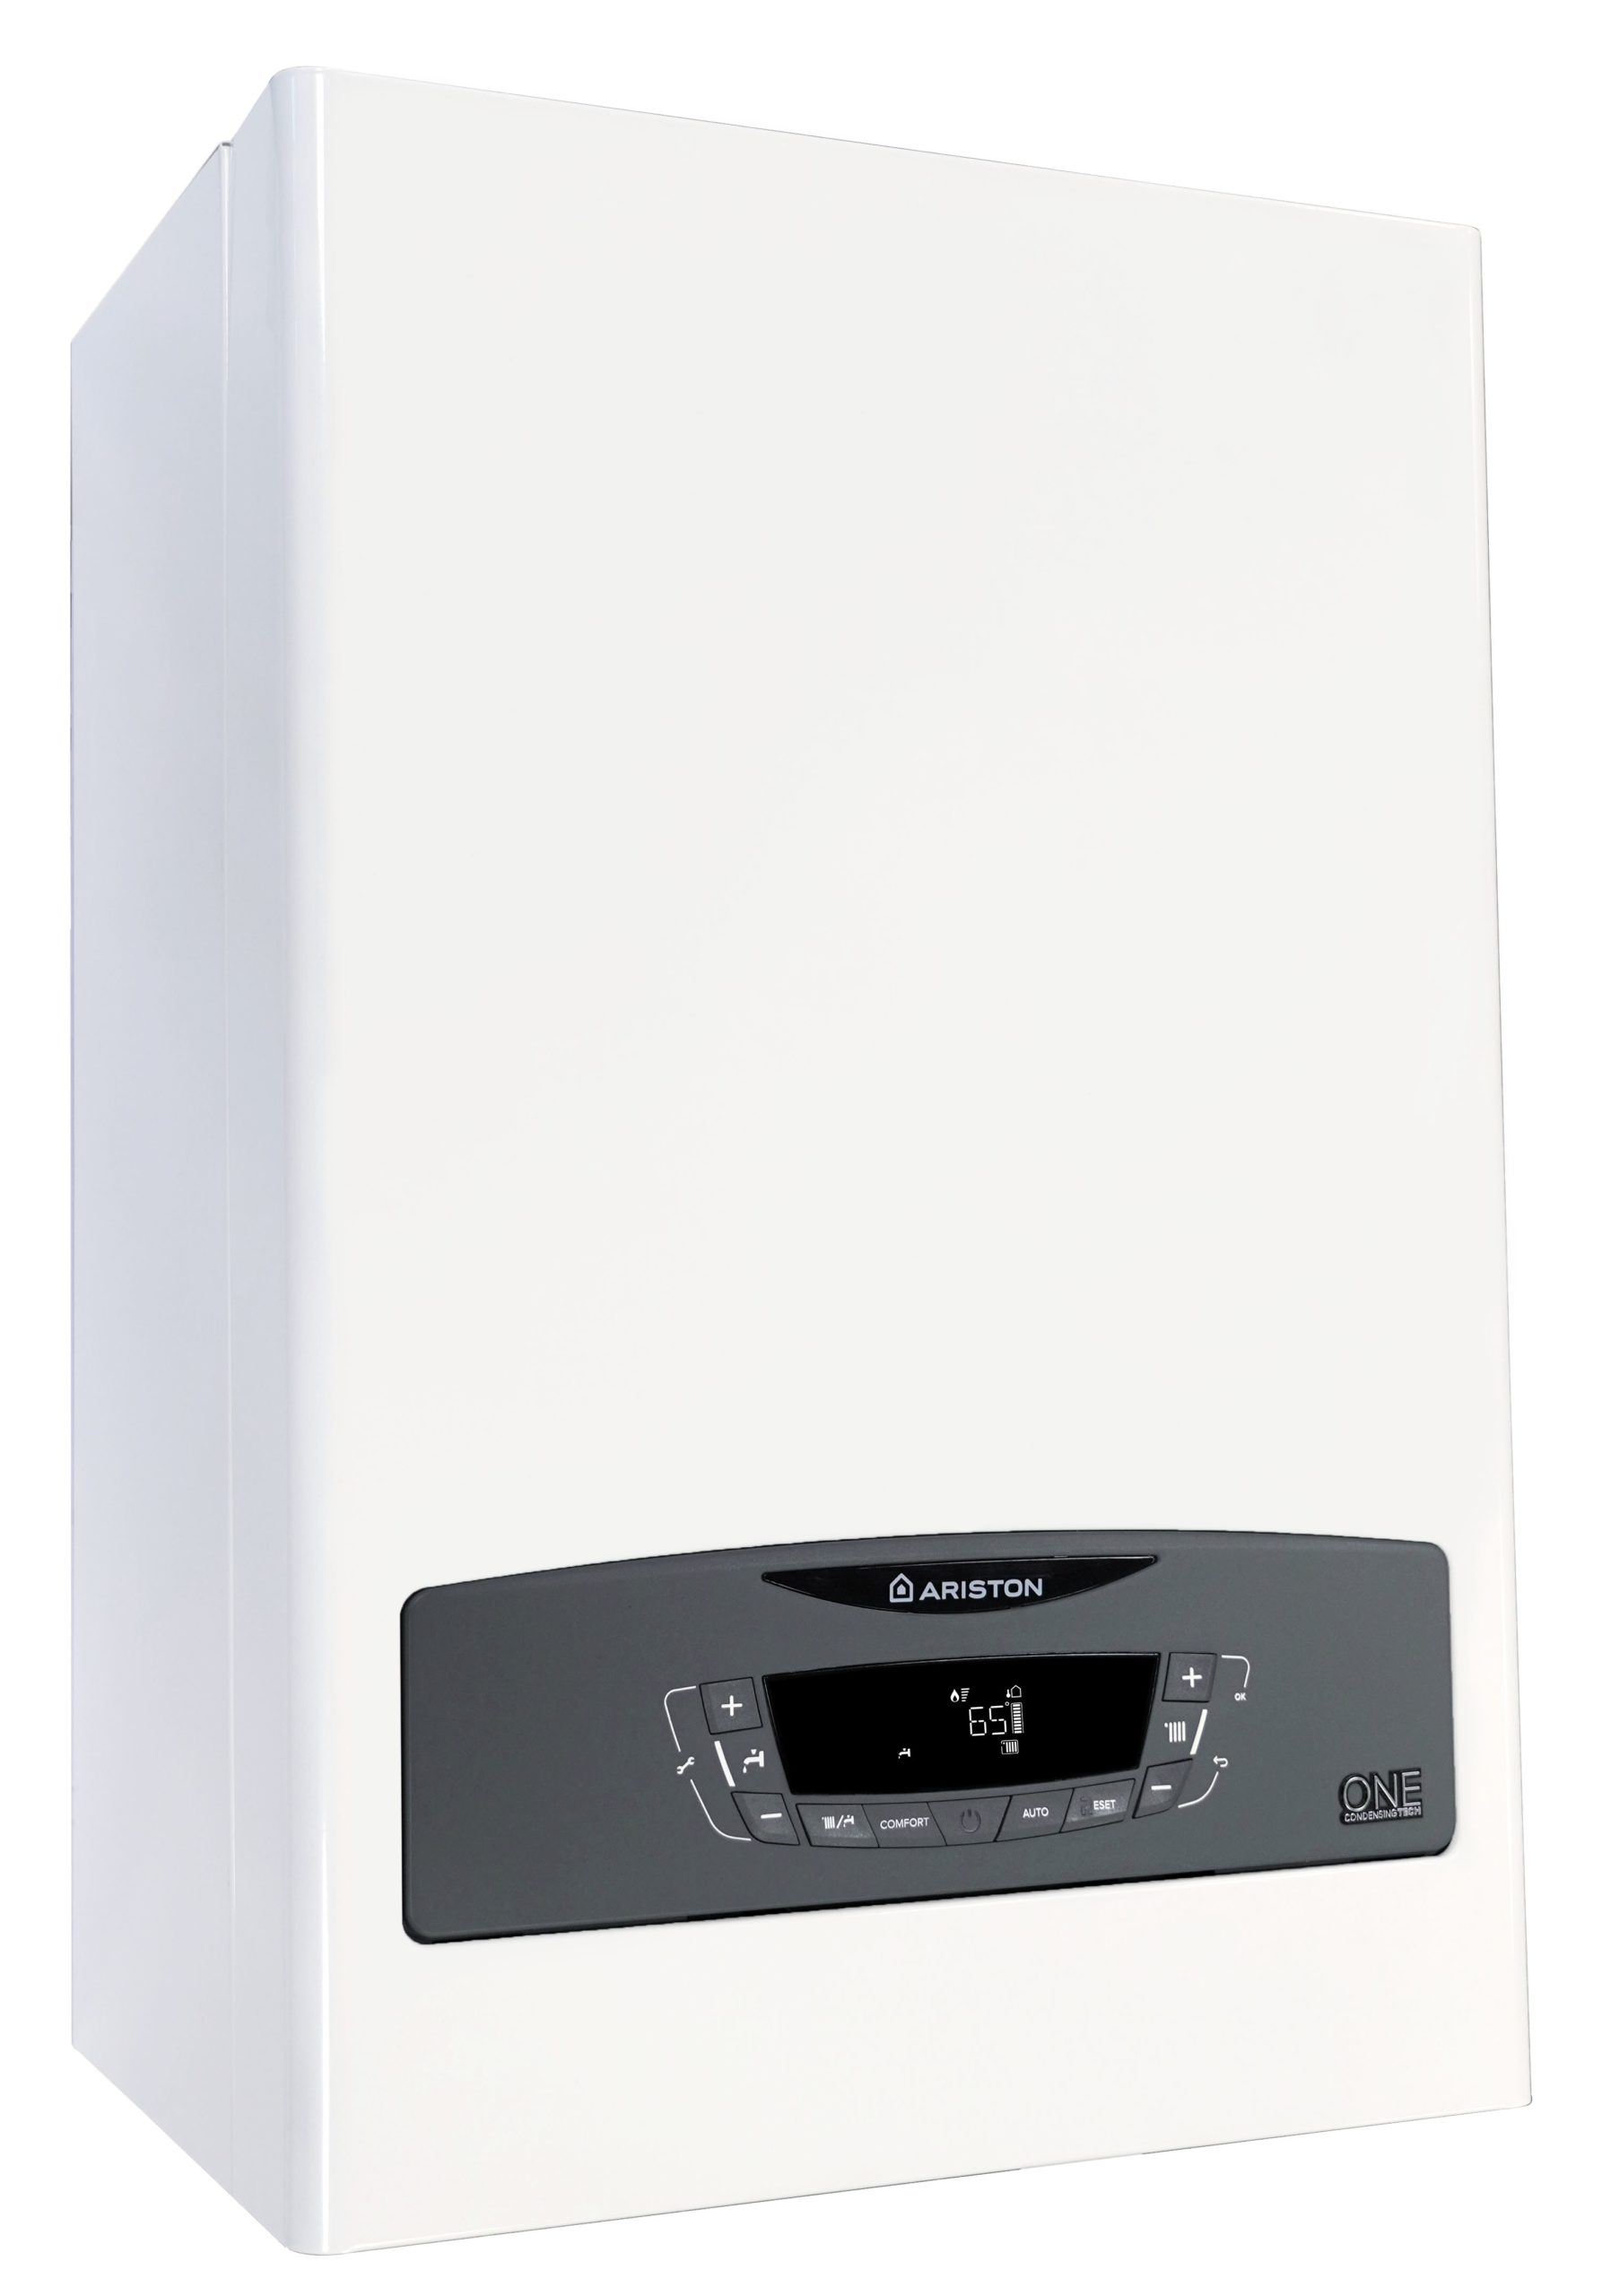 Ariston strengthens its One Series range of boilers